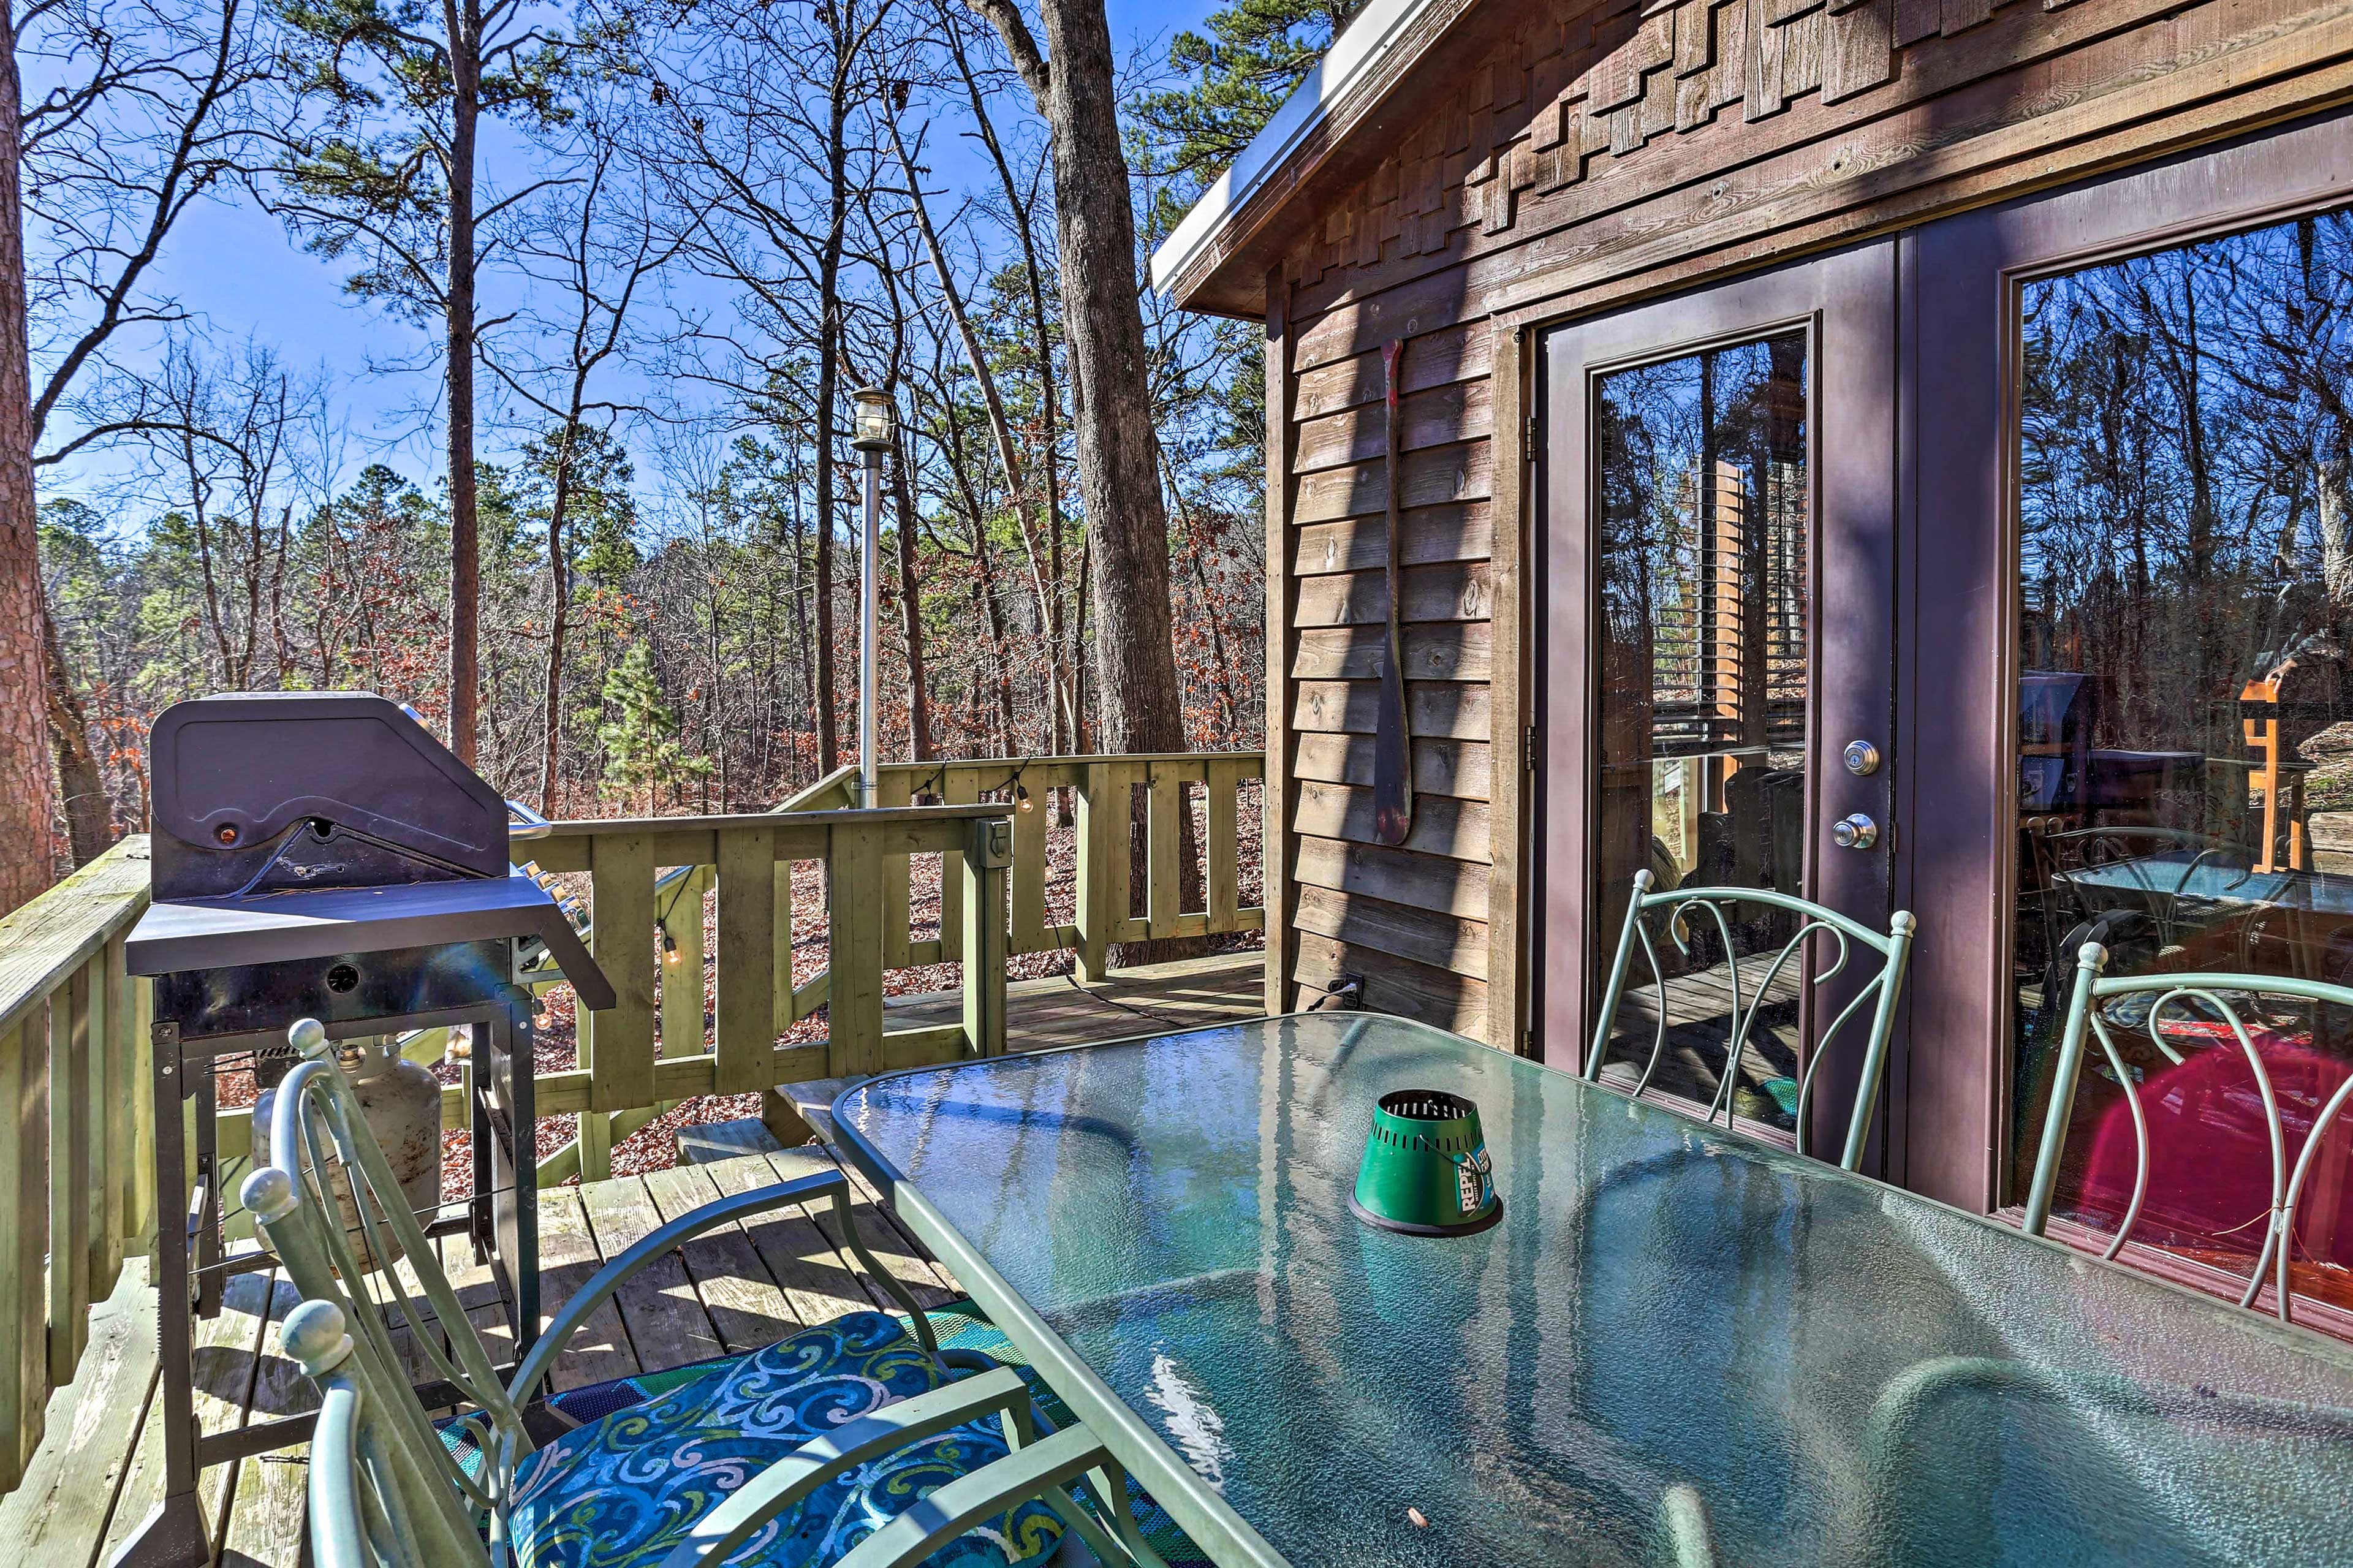 Step outside to enjoy a barbecue on the deck.